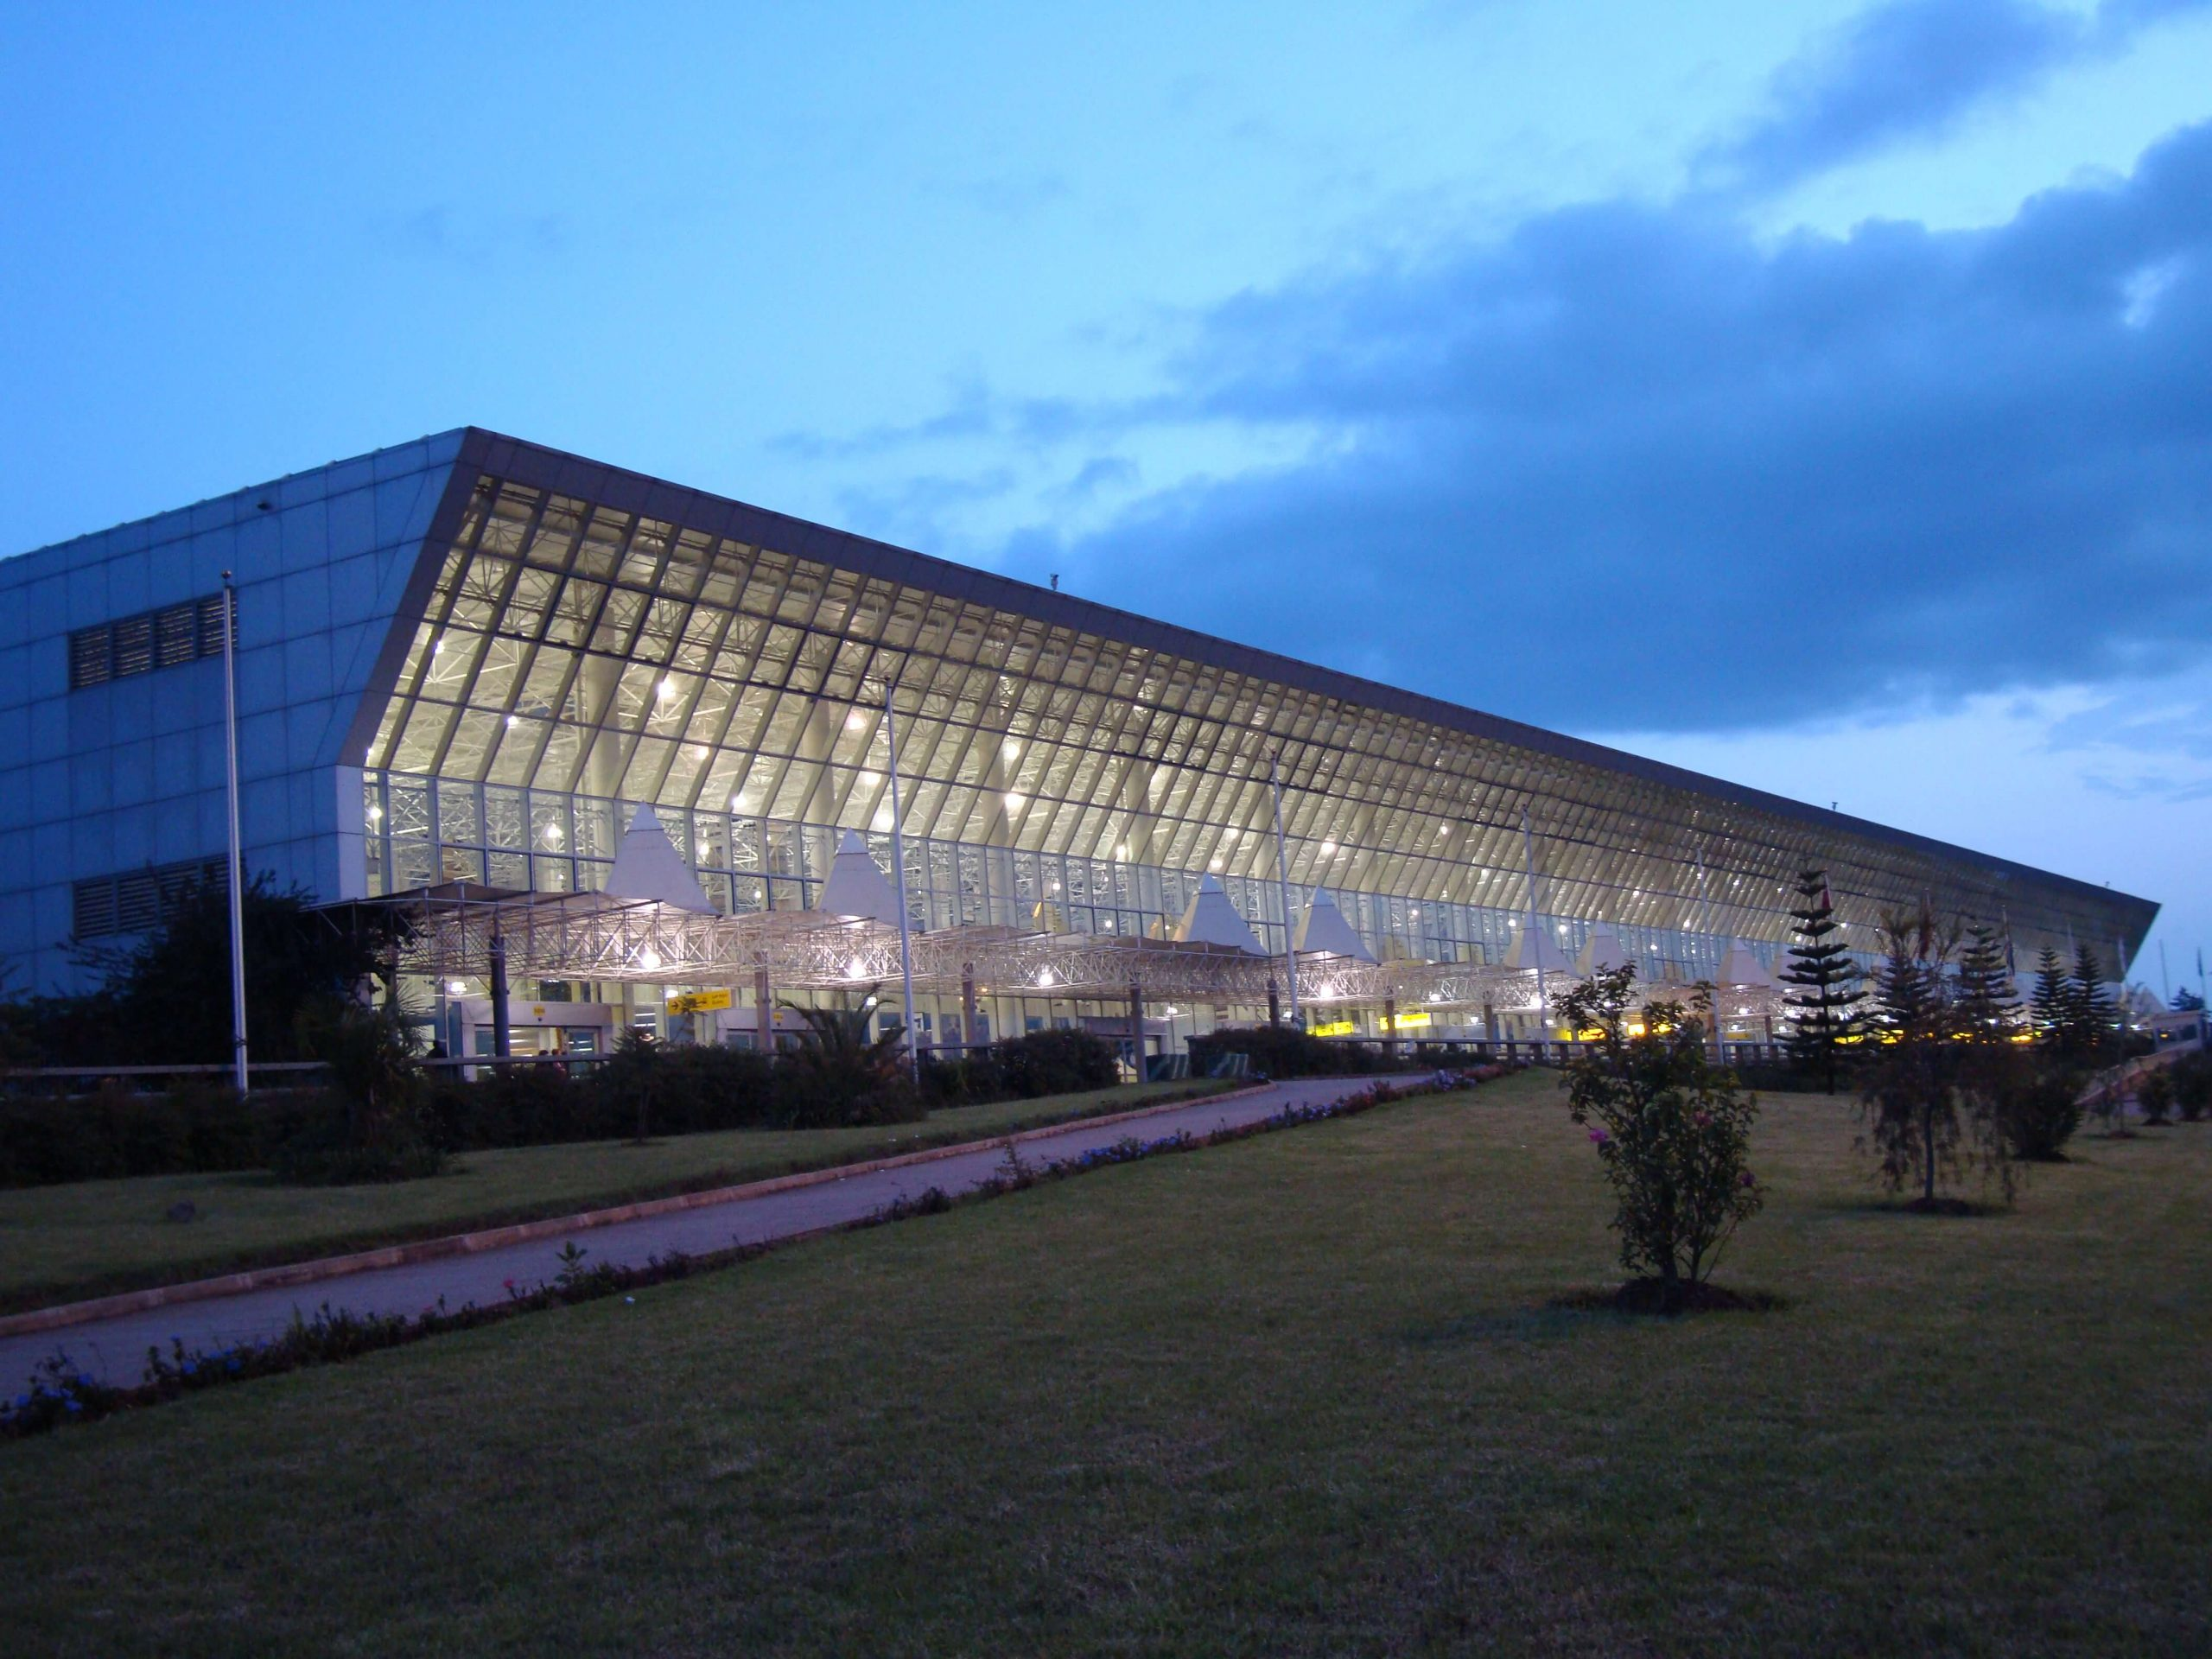 An Image of the Main Terminal of the Addis Ababa Bole International Airport